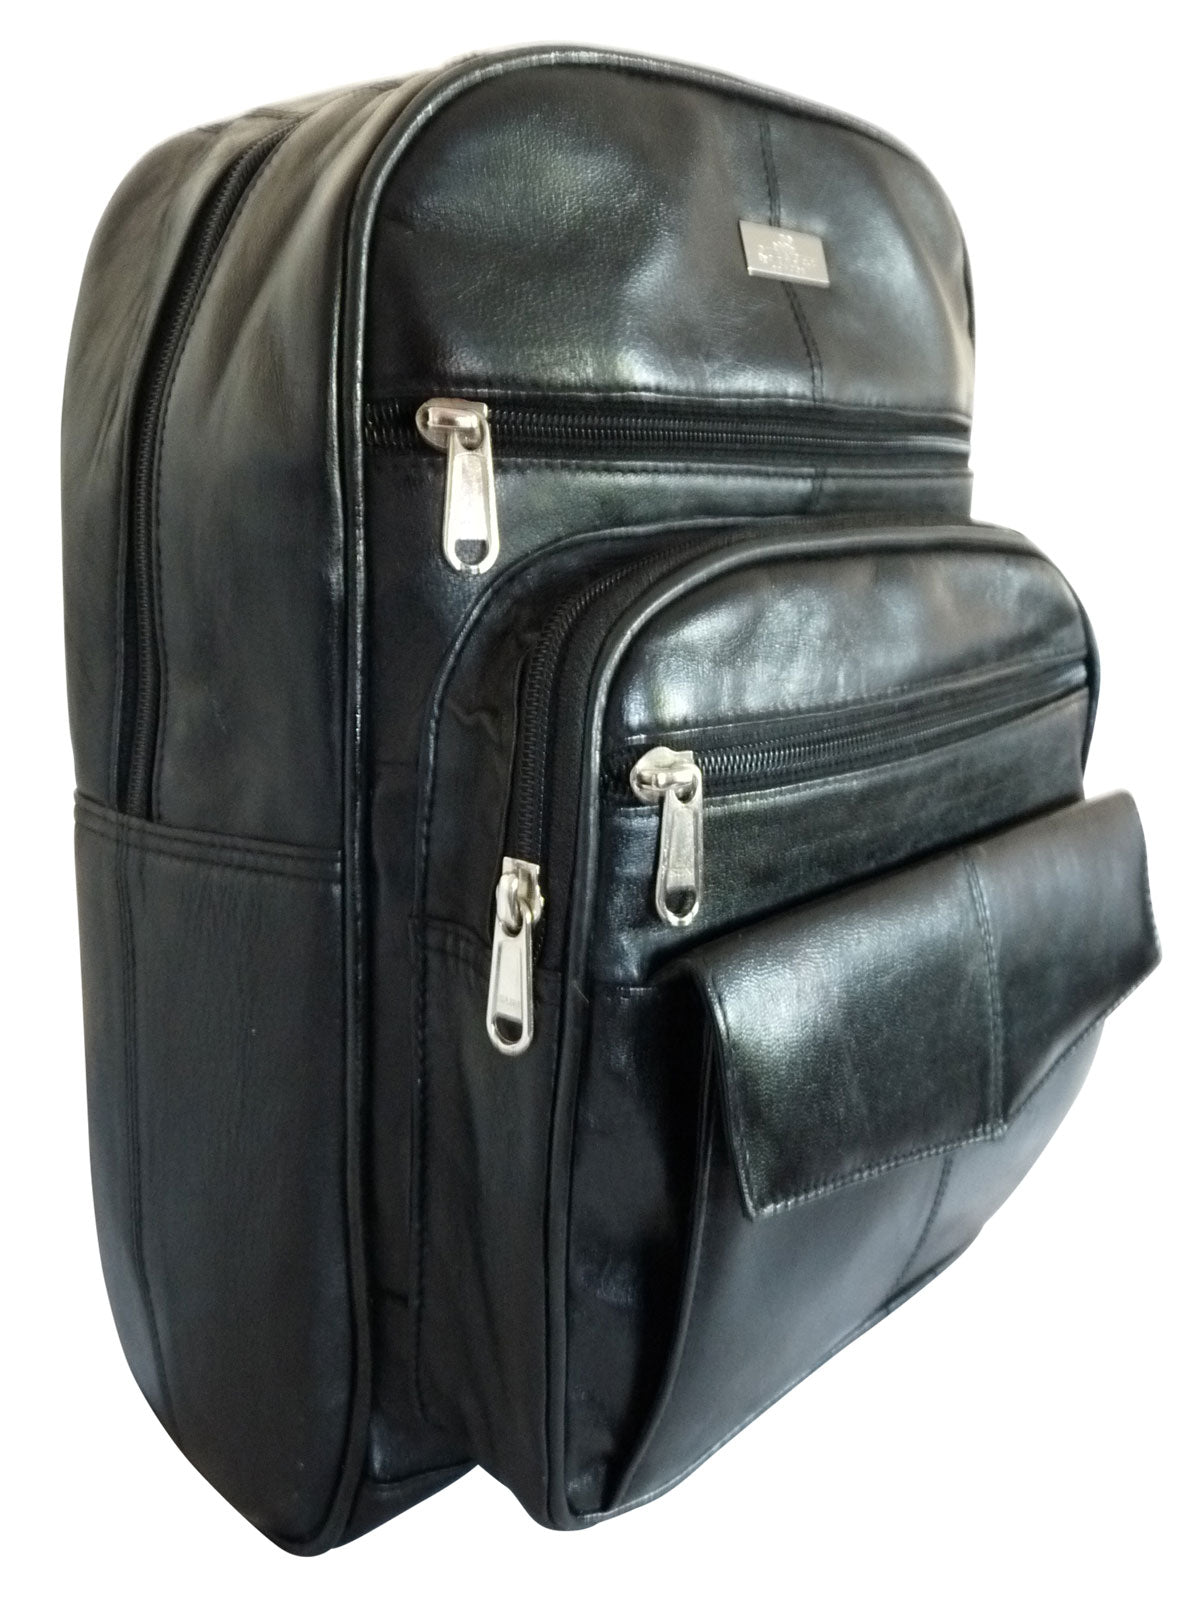 Real leather backpack handbag QL192Ks